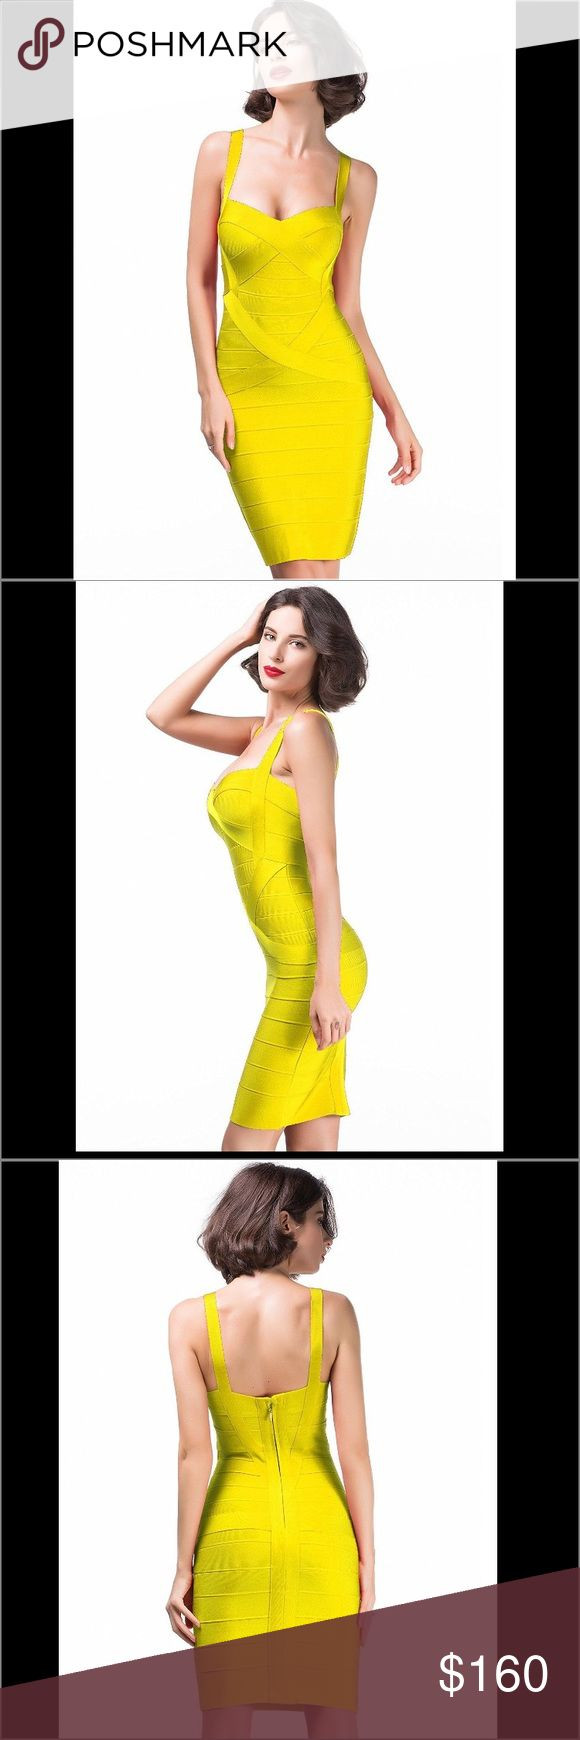 Yellow heavyweight bandage dress Turn up the heat in this ultra-flattering Deep V Neck Bandage Dress. This gold bandage dress designed to sculpt a gorgeous hourglass figure and featuring a sexy cut out deep v neck with zip fastening to rear.  Center back zipper with hook-and-eye closure. Fabric: 90% Rayon + 9% Nylon + 1% Spandex Anti-wrinkle. High quality heavyweight bandage. Durable and reliable zippers. High elasticity for a better fit. Delicate sewing and hemming by durable needle…